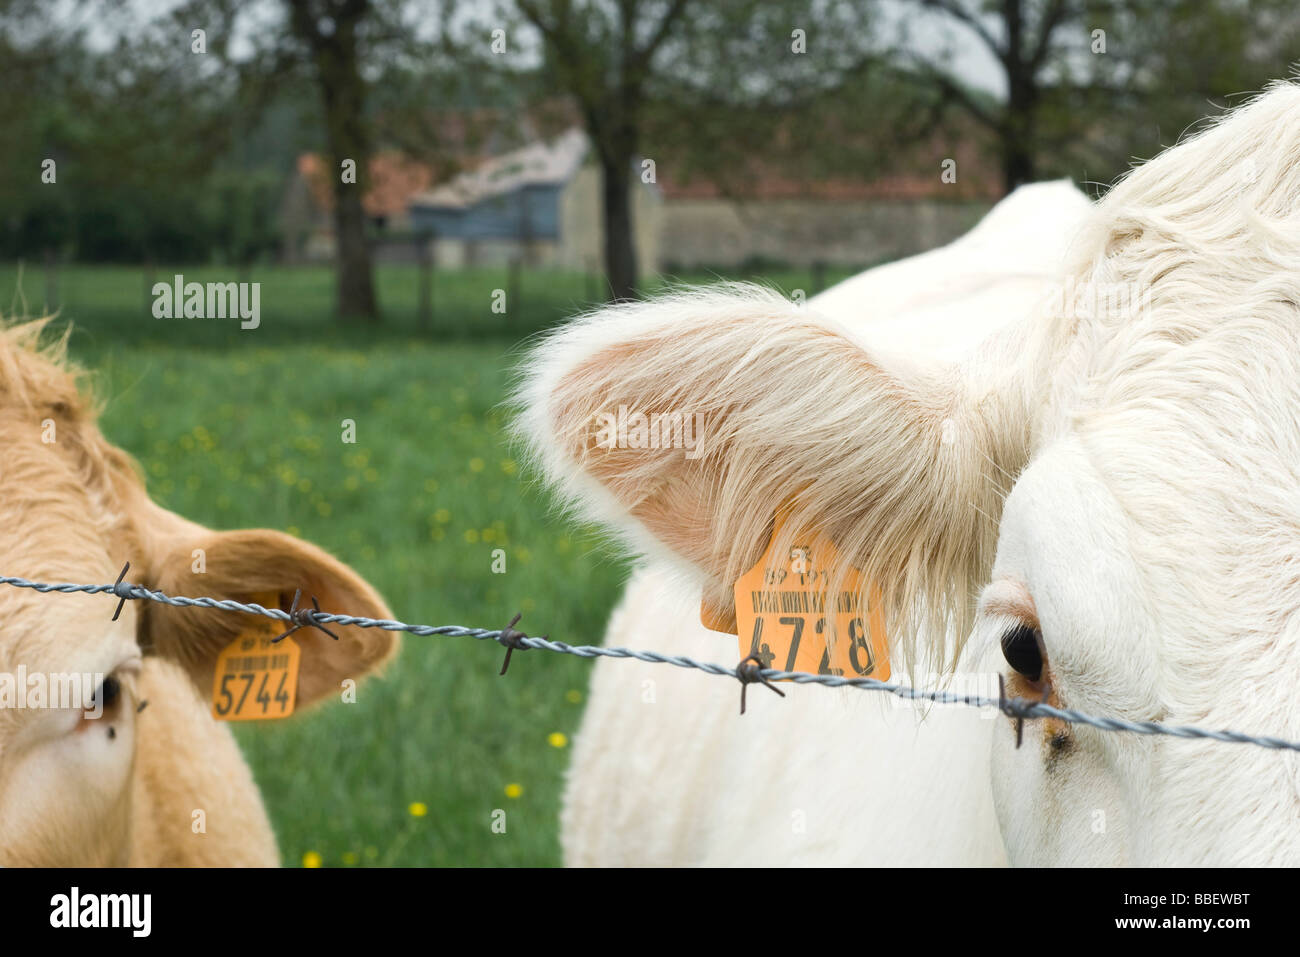 Cattle with ear tags behind barbed wire, close-up - Stock Image